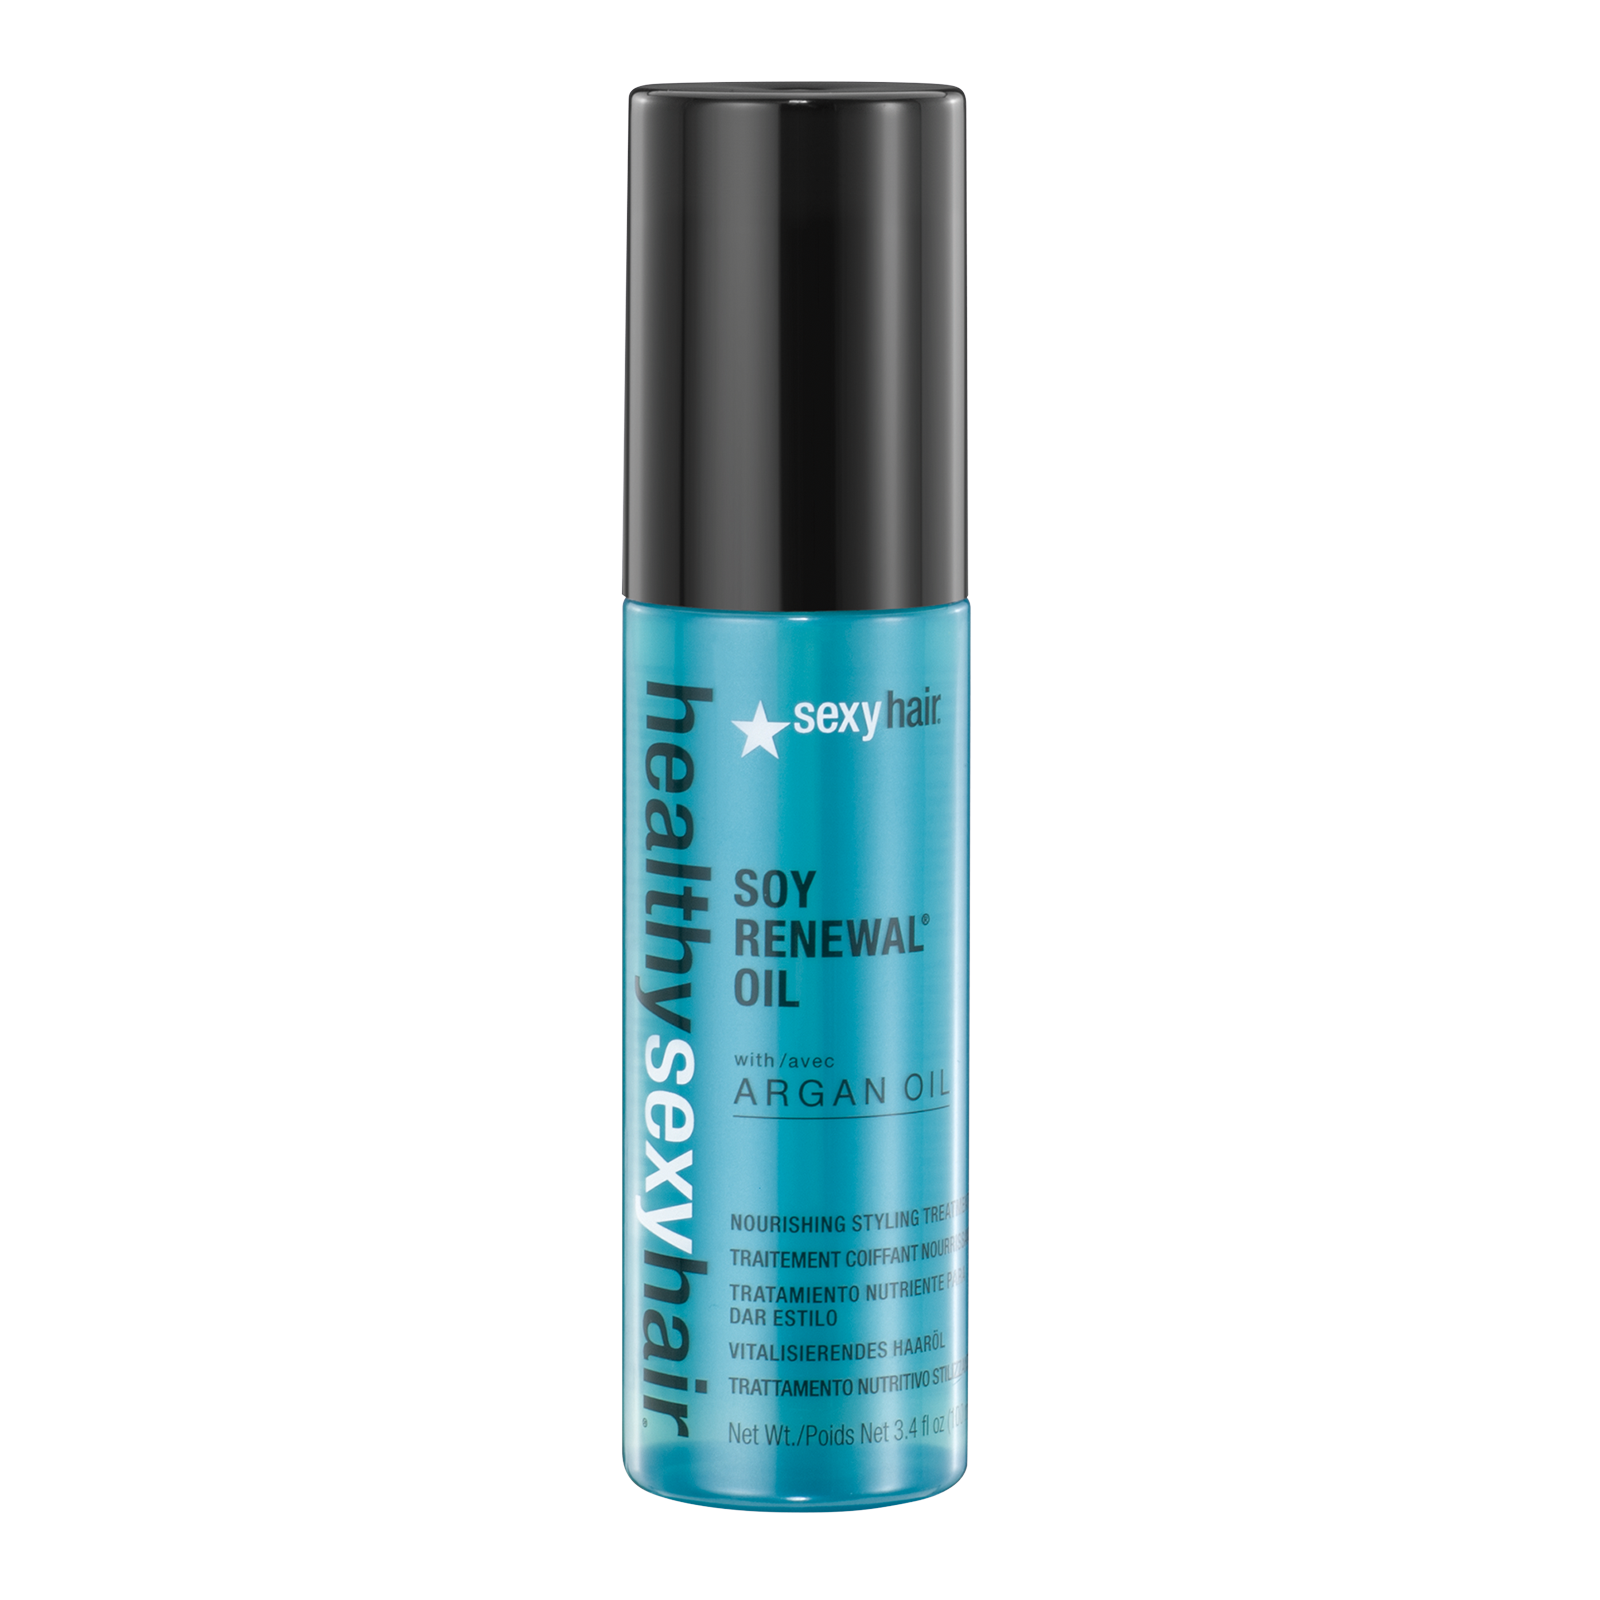 healthy sexy hair soy renewal nourishing styling treatment healthy hair soy renewal treatment hair 2703 | 844921